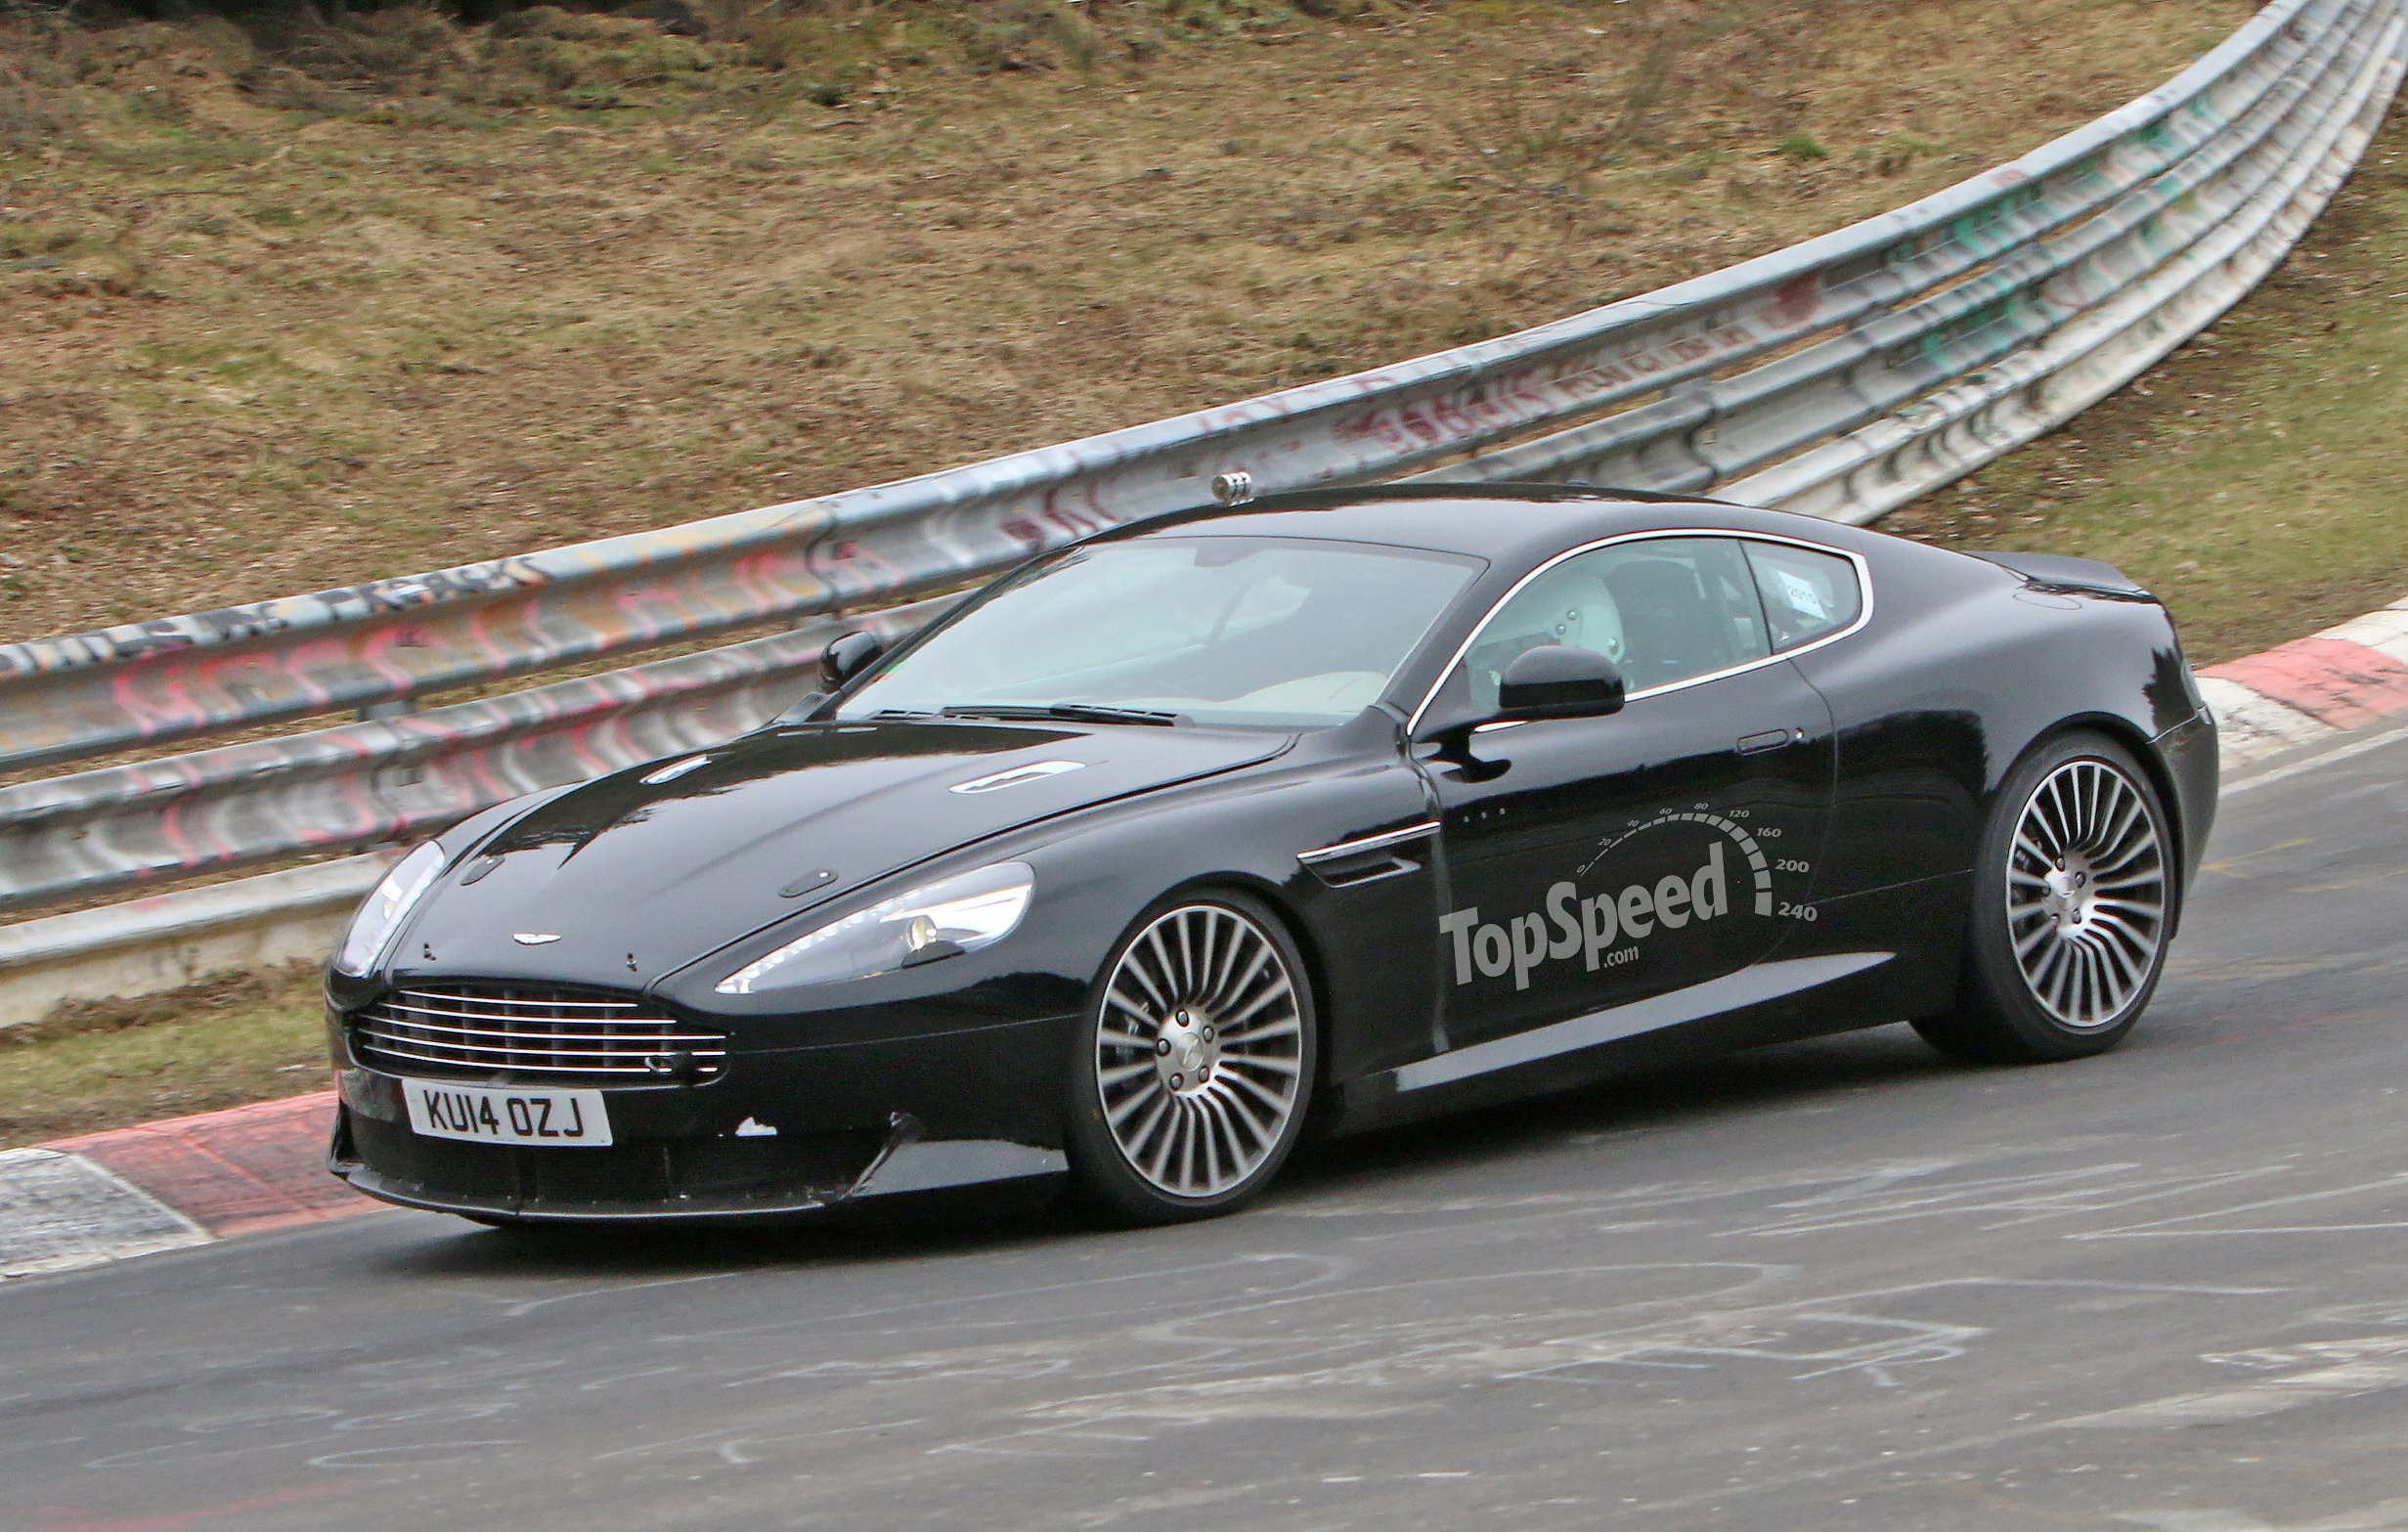 2017 aston martin db11 review top speed. Black Bedroom Furniture Sets. Home Design Ideas